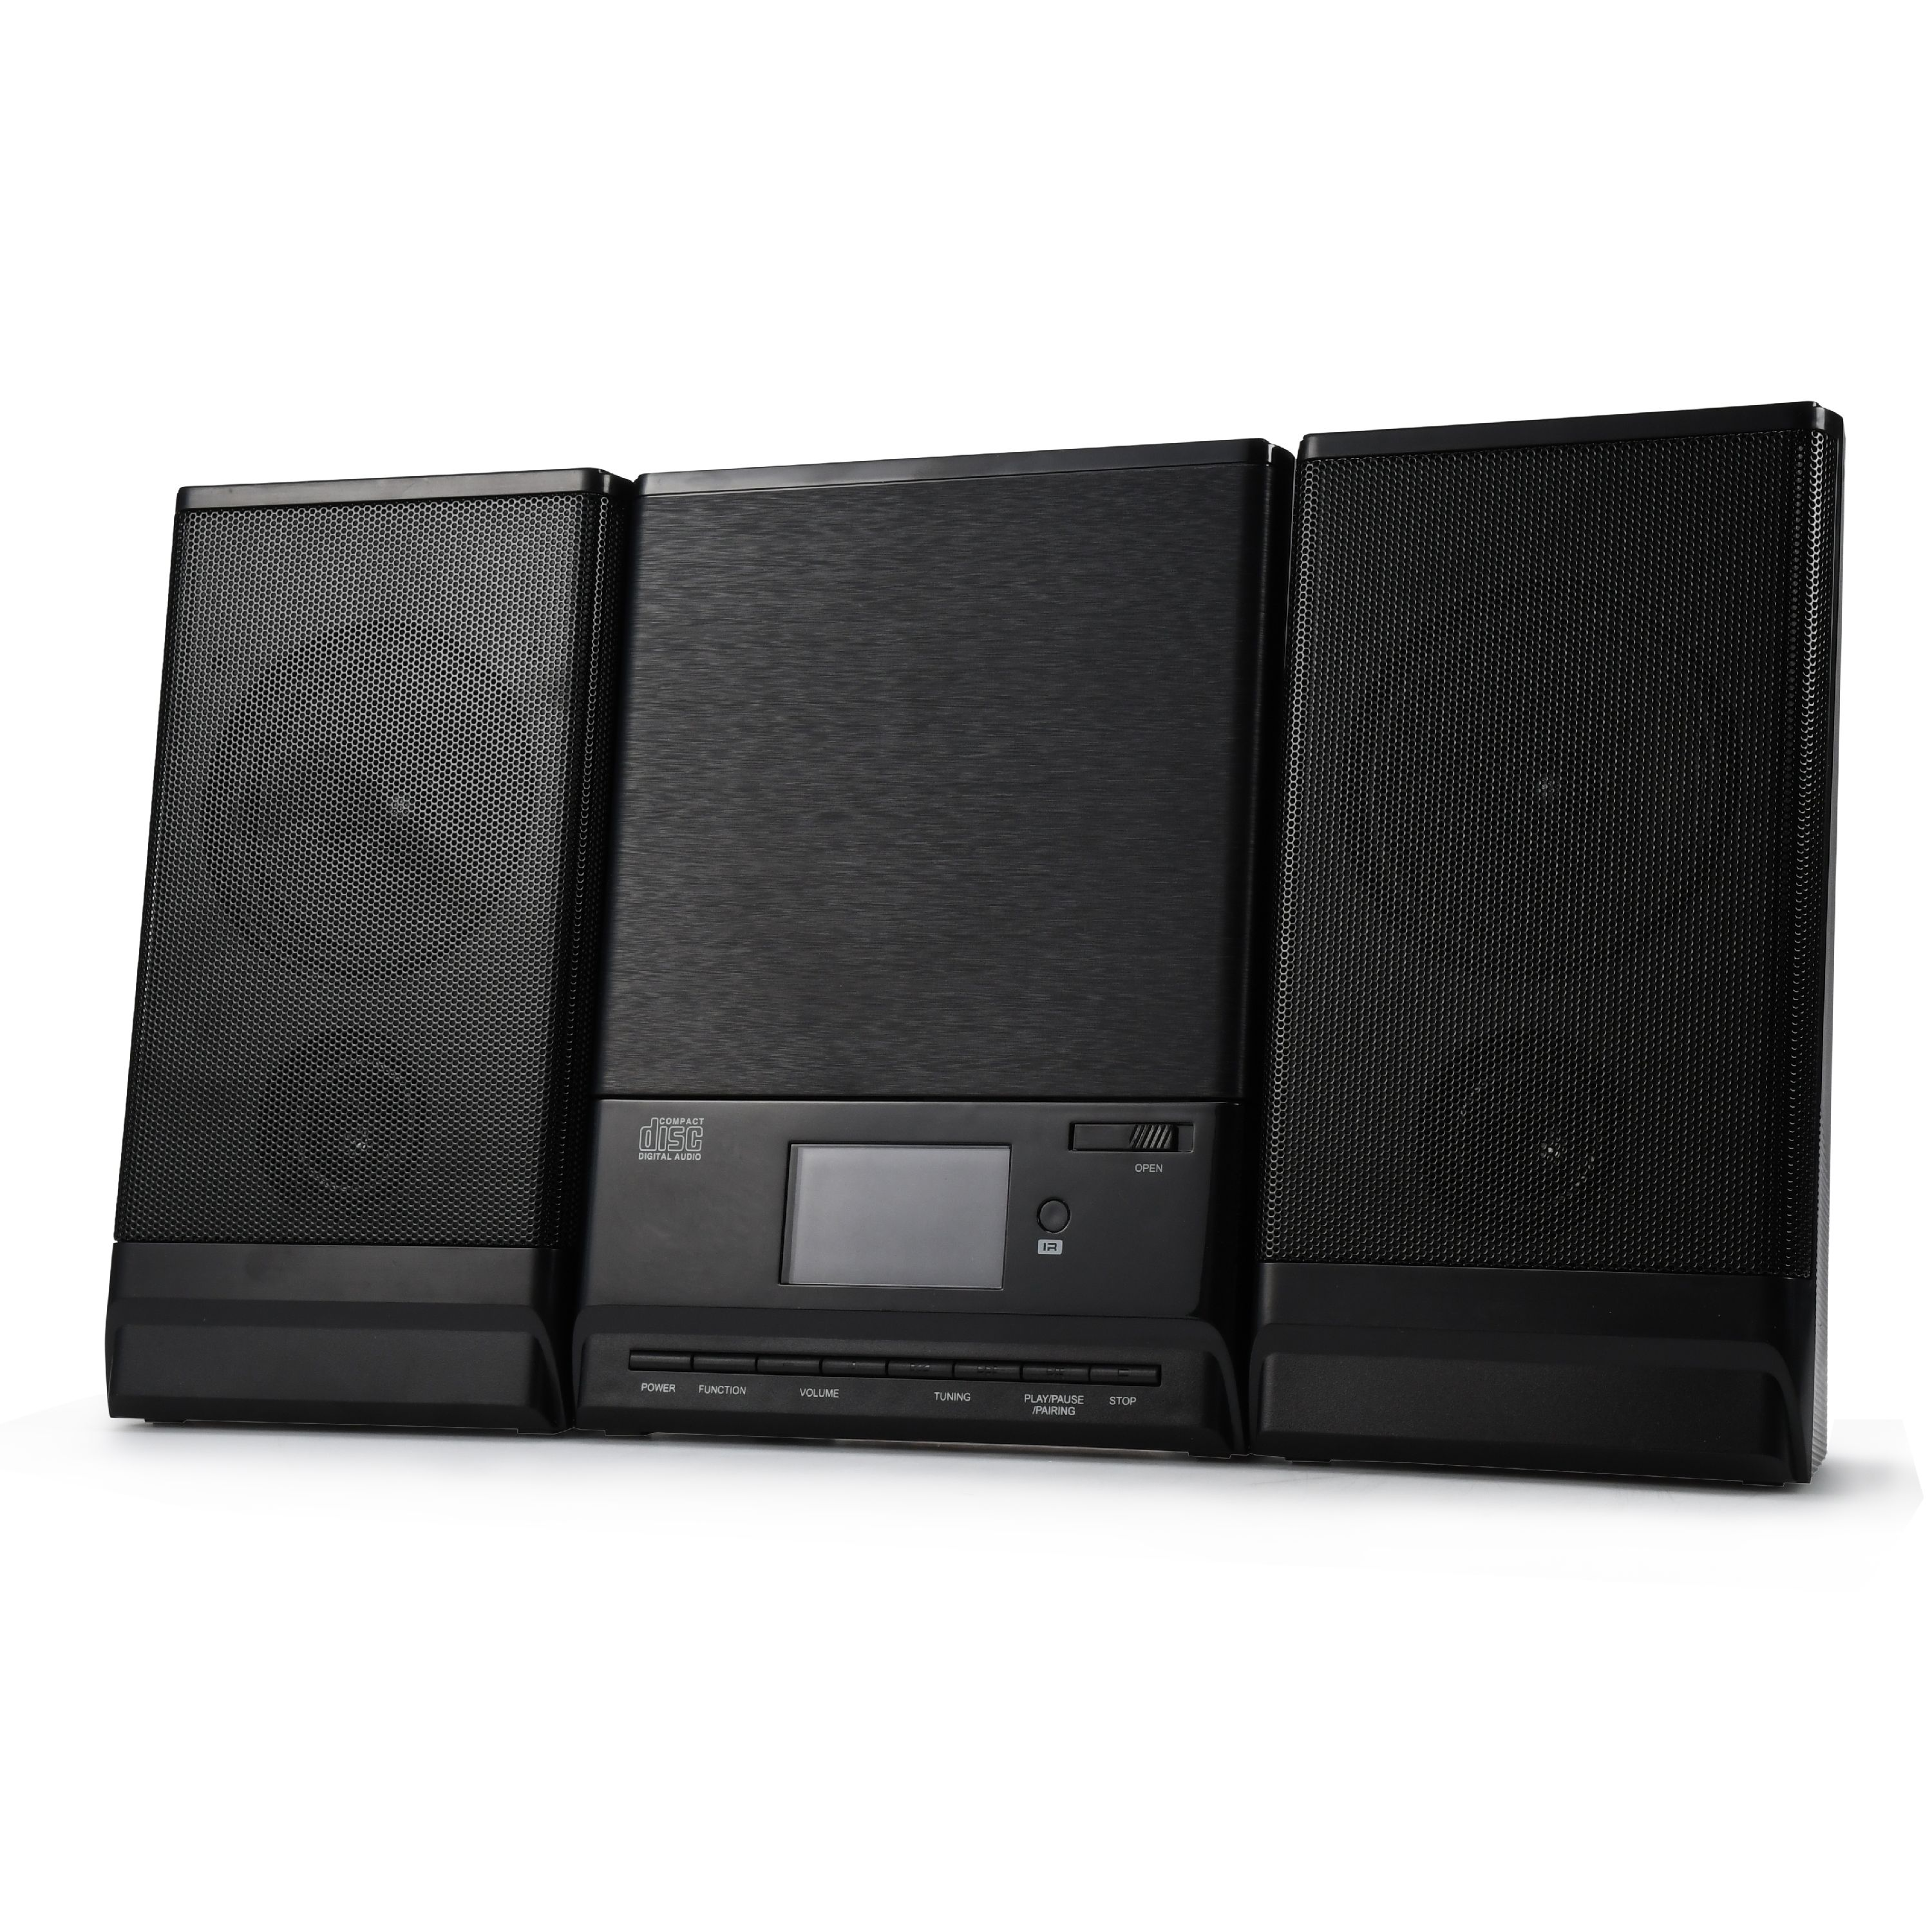 Onn Mini CD Stereo System With Bluetooth, FM Radio And Remote Control